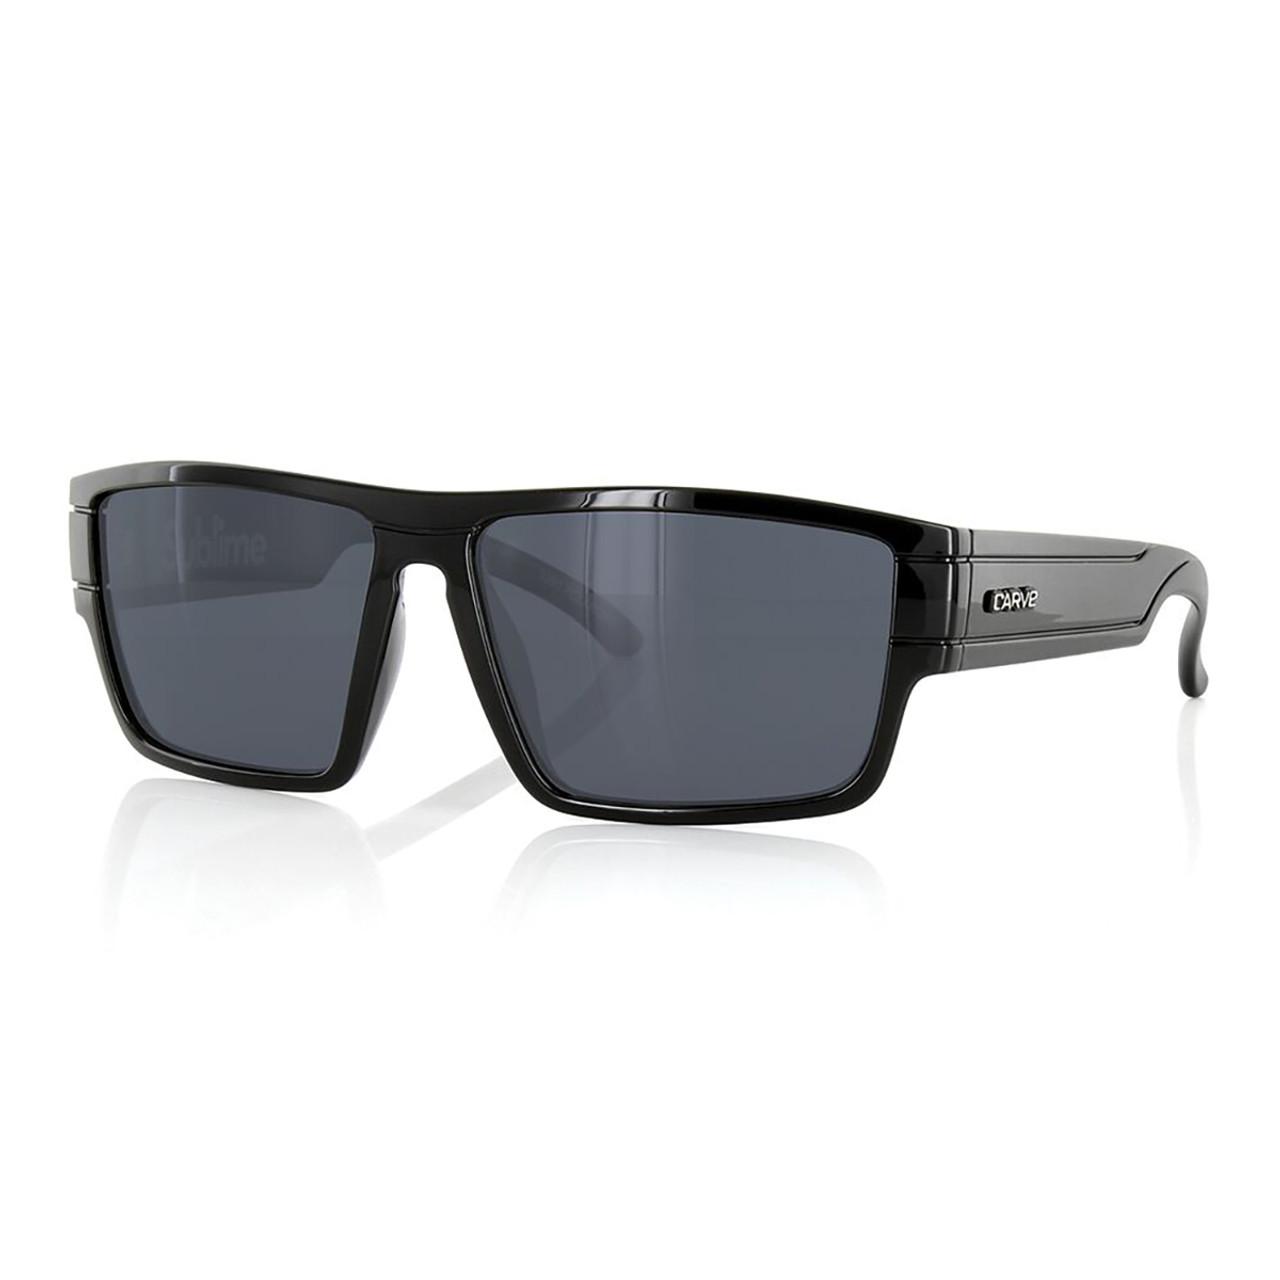 77cd260c0a Sublime Polarized - Black - Grey Polarized - Val Surf